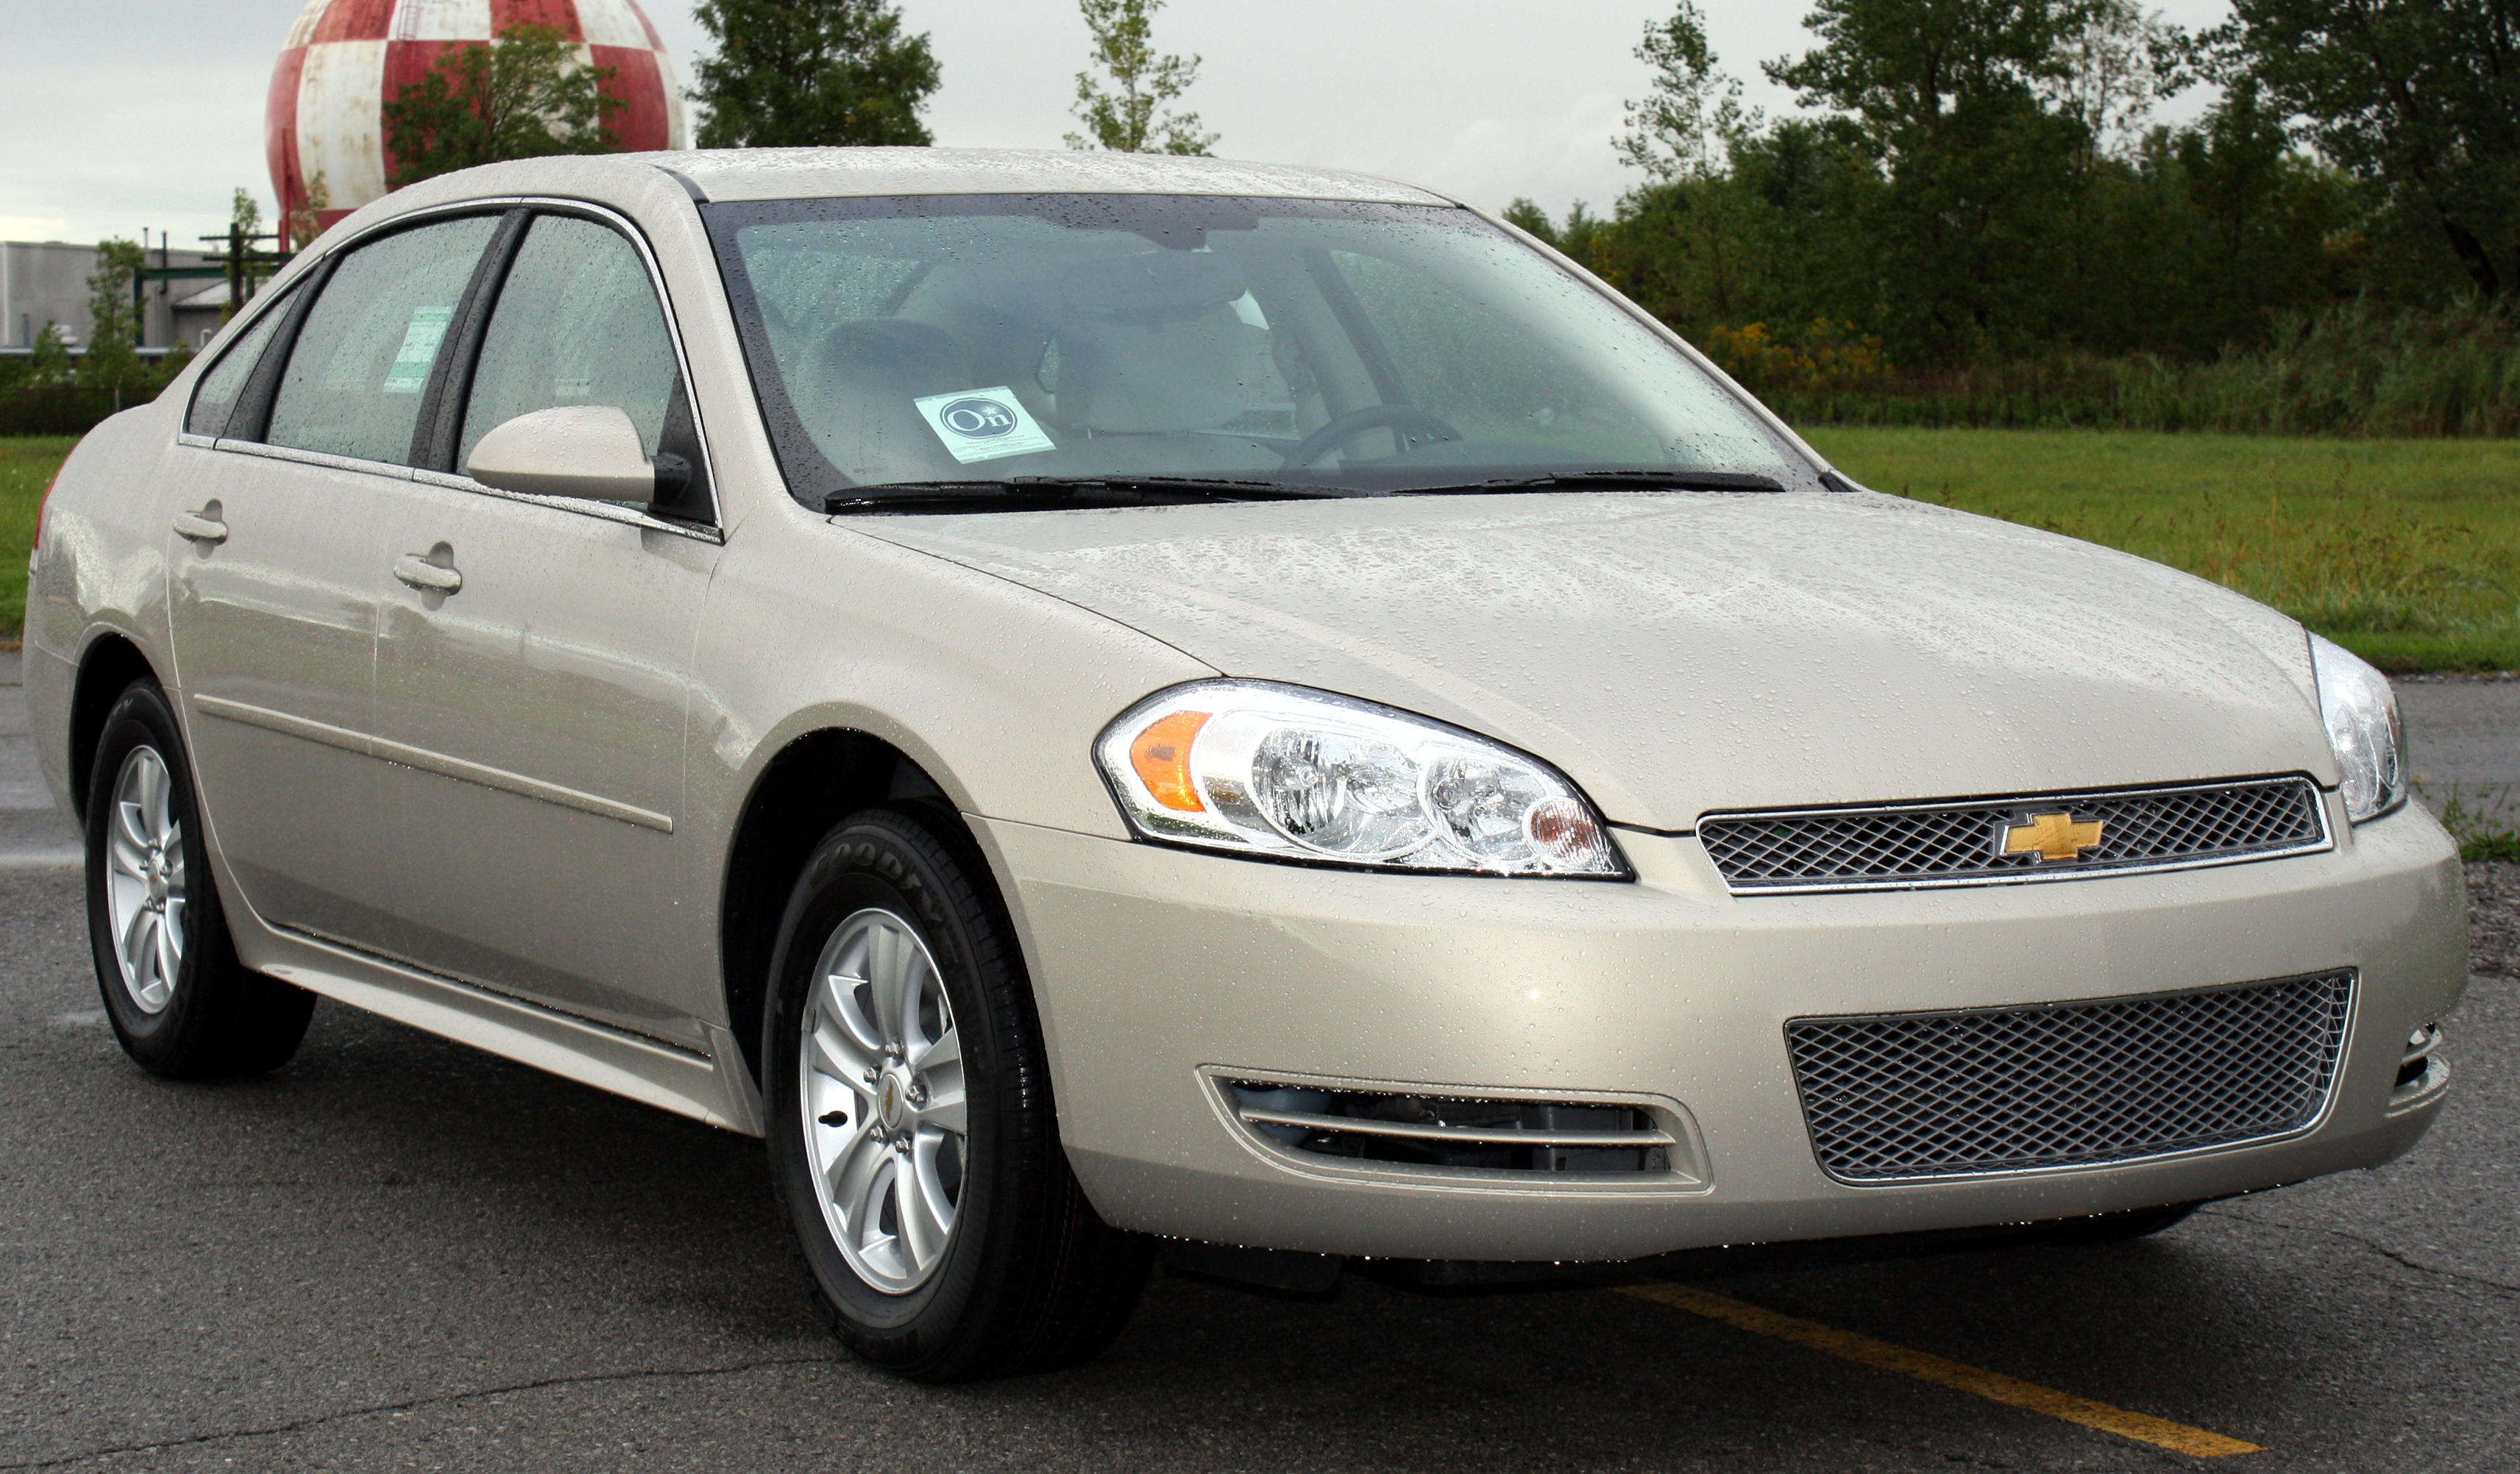 en detail news stop makes media impala may sale startstop for in vehicles start standard pages content us cars chevrolet